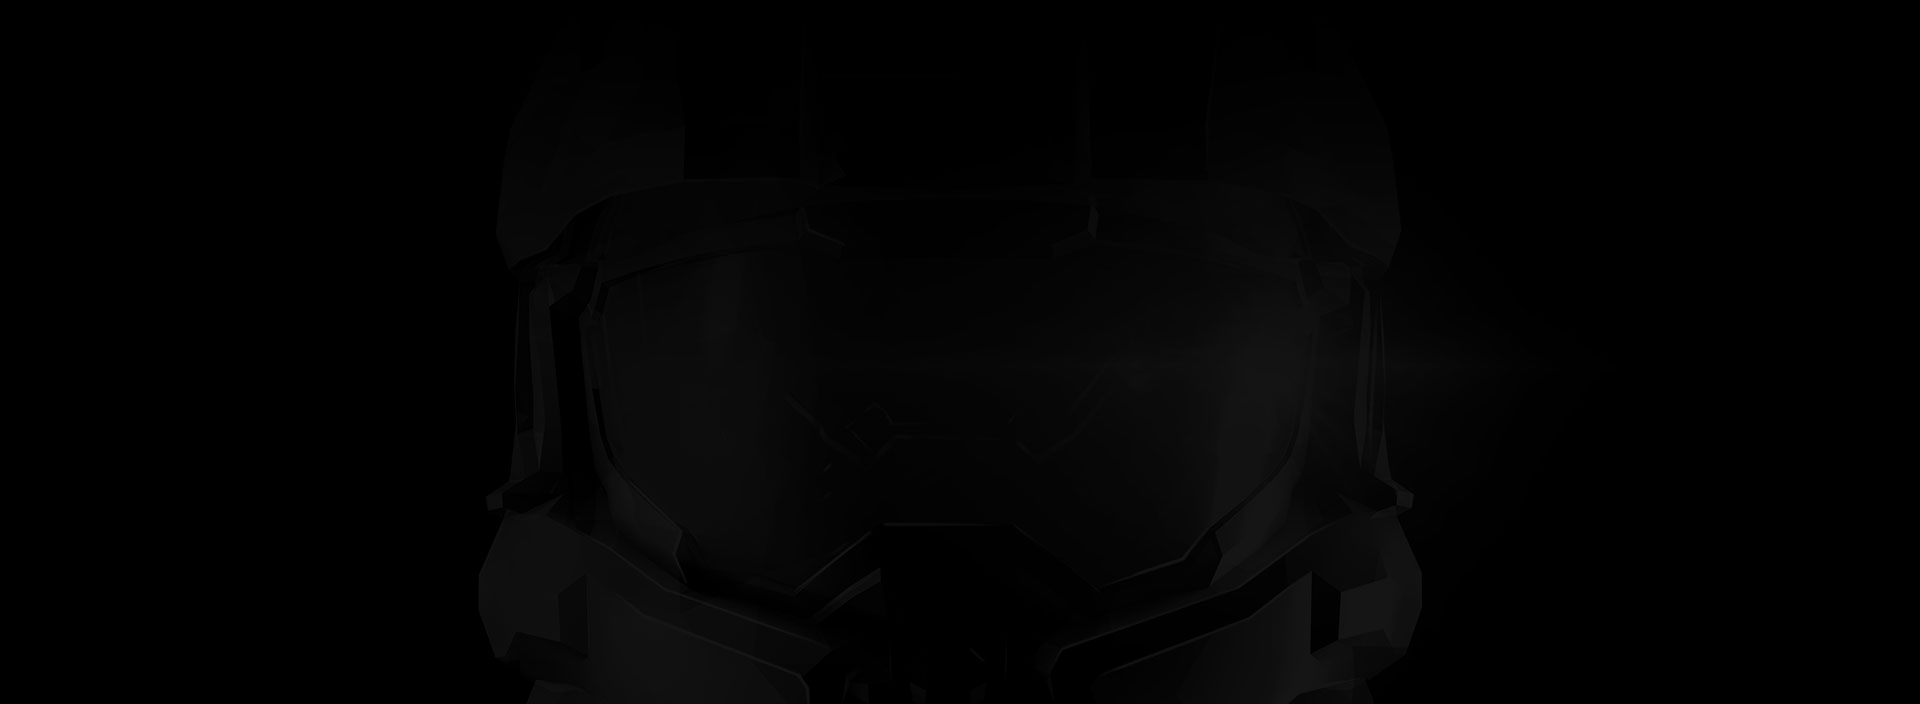 Faint Master Chief helmet silhouette on black background